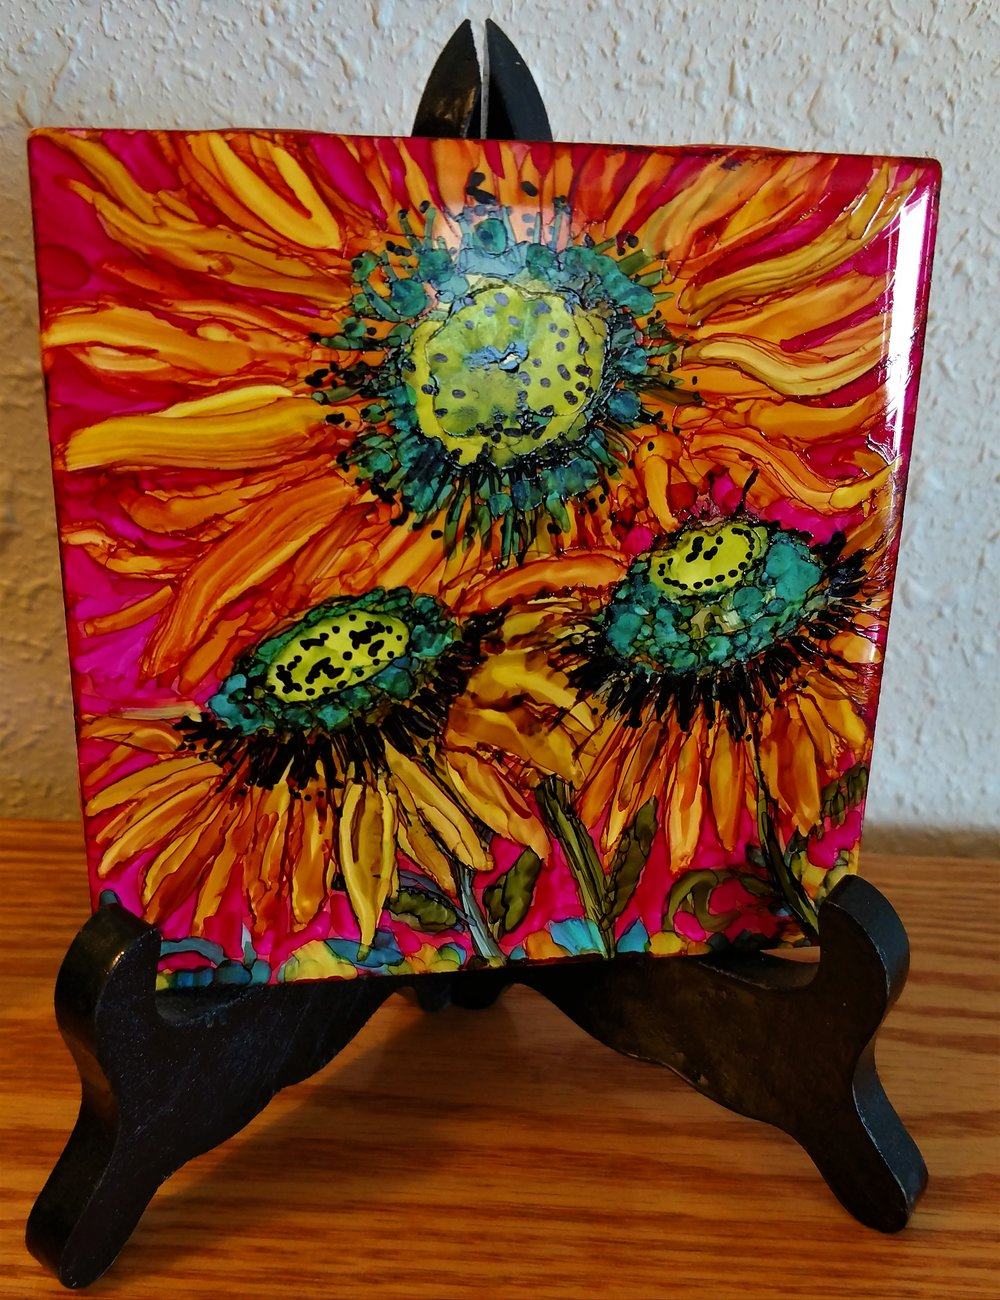 4x4 Sunflowers $15